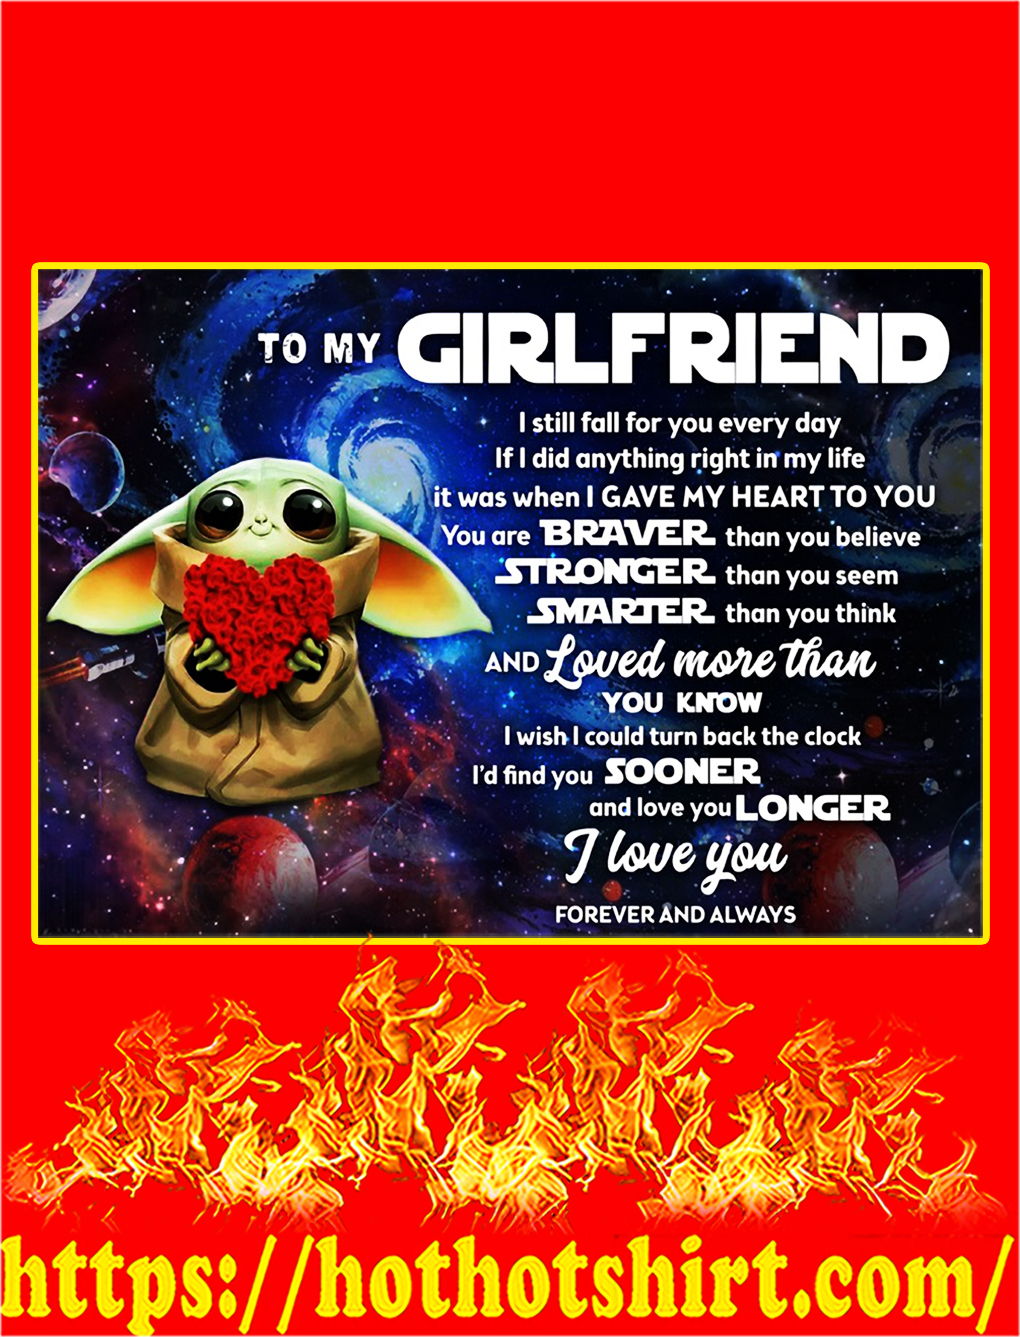 Baby yoda to my girlfriend poster - A3